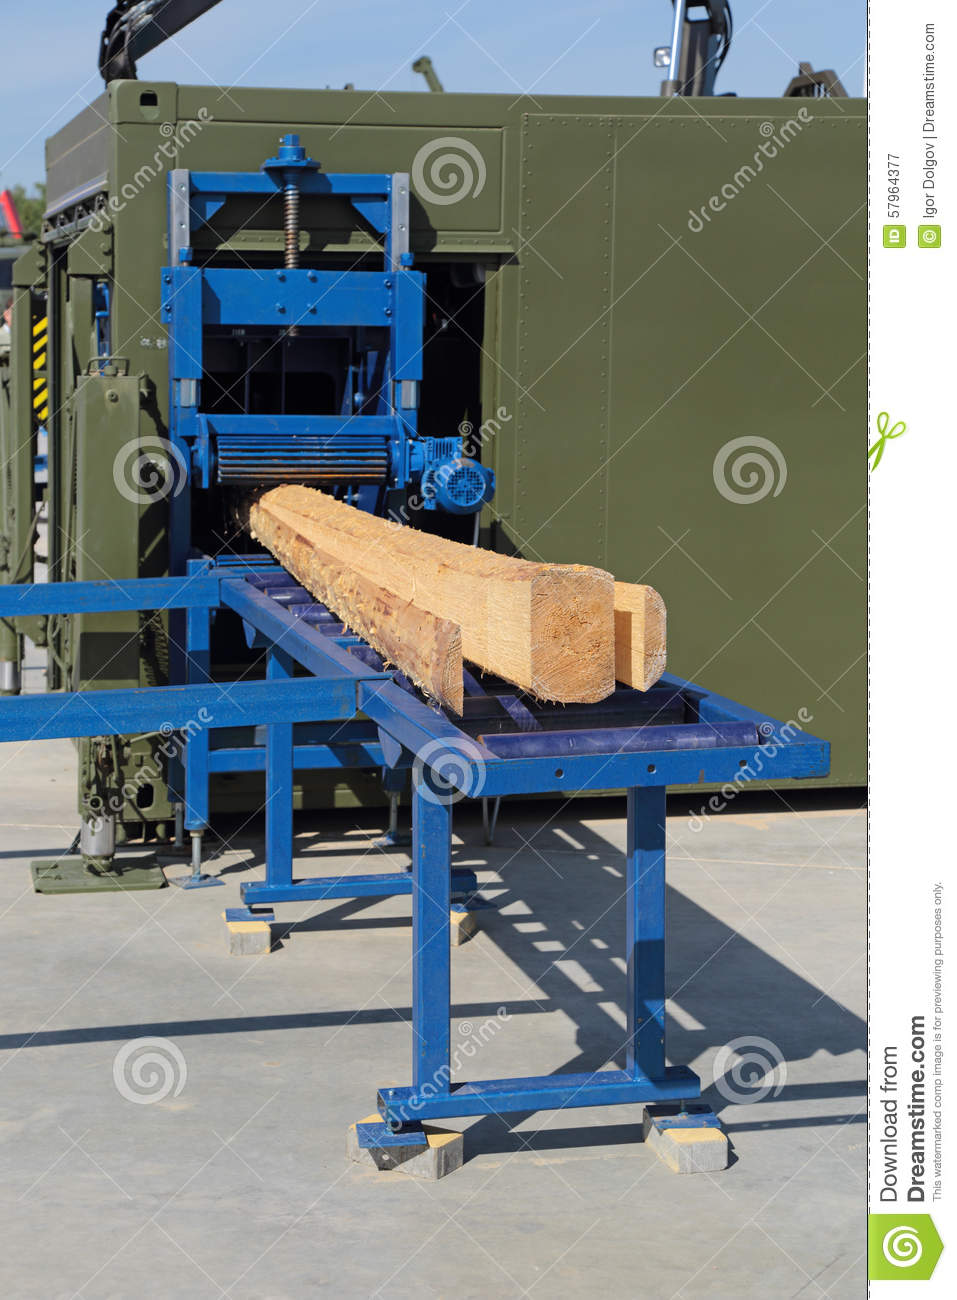 Portable sawmill business plan